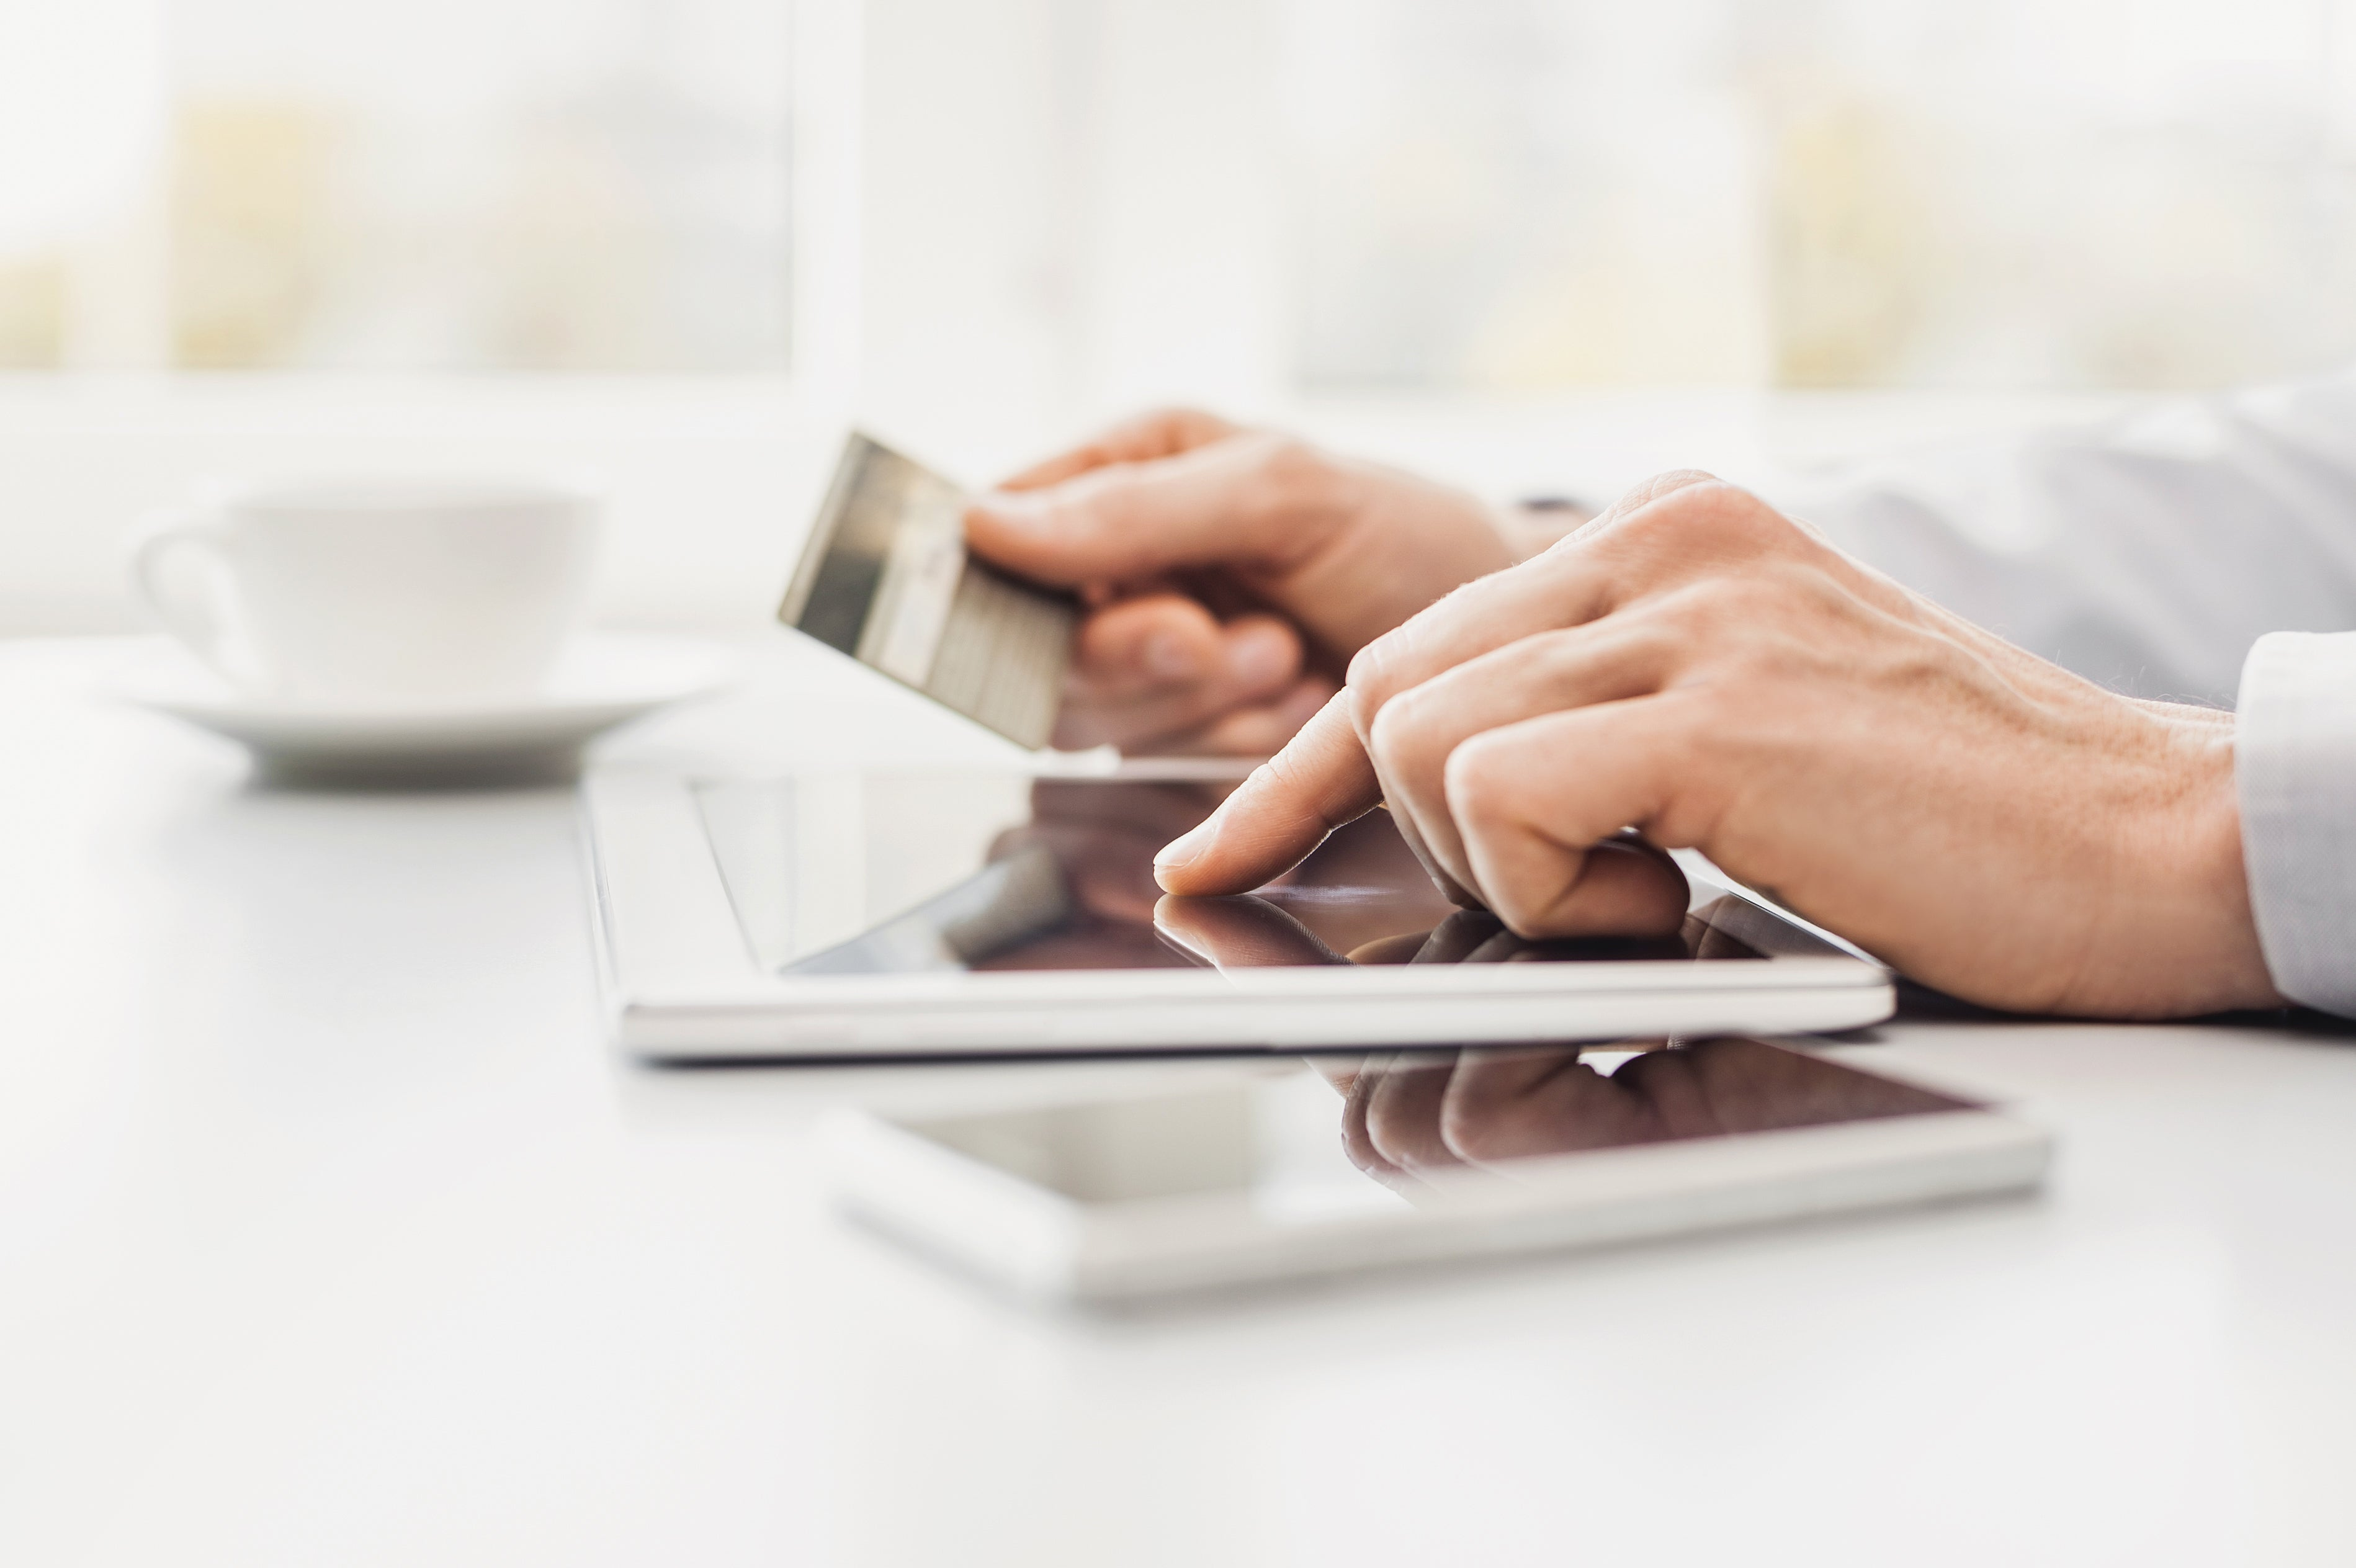 Person using a tablet and holding a credit card.